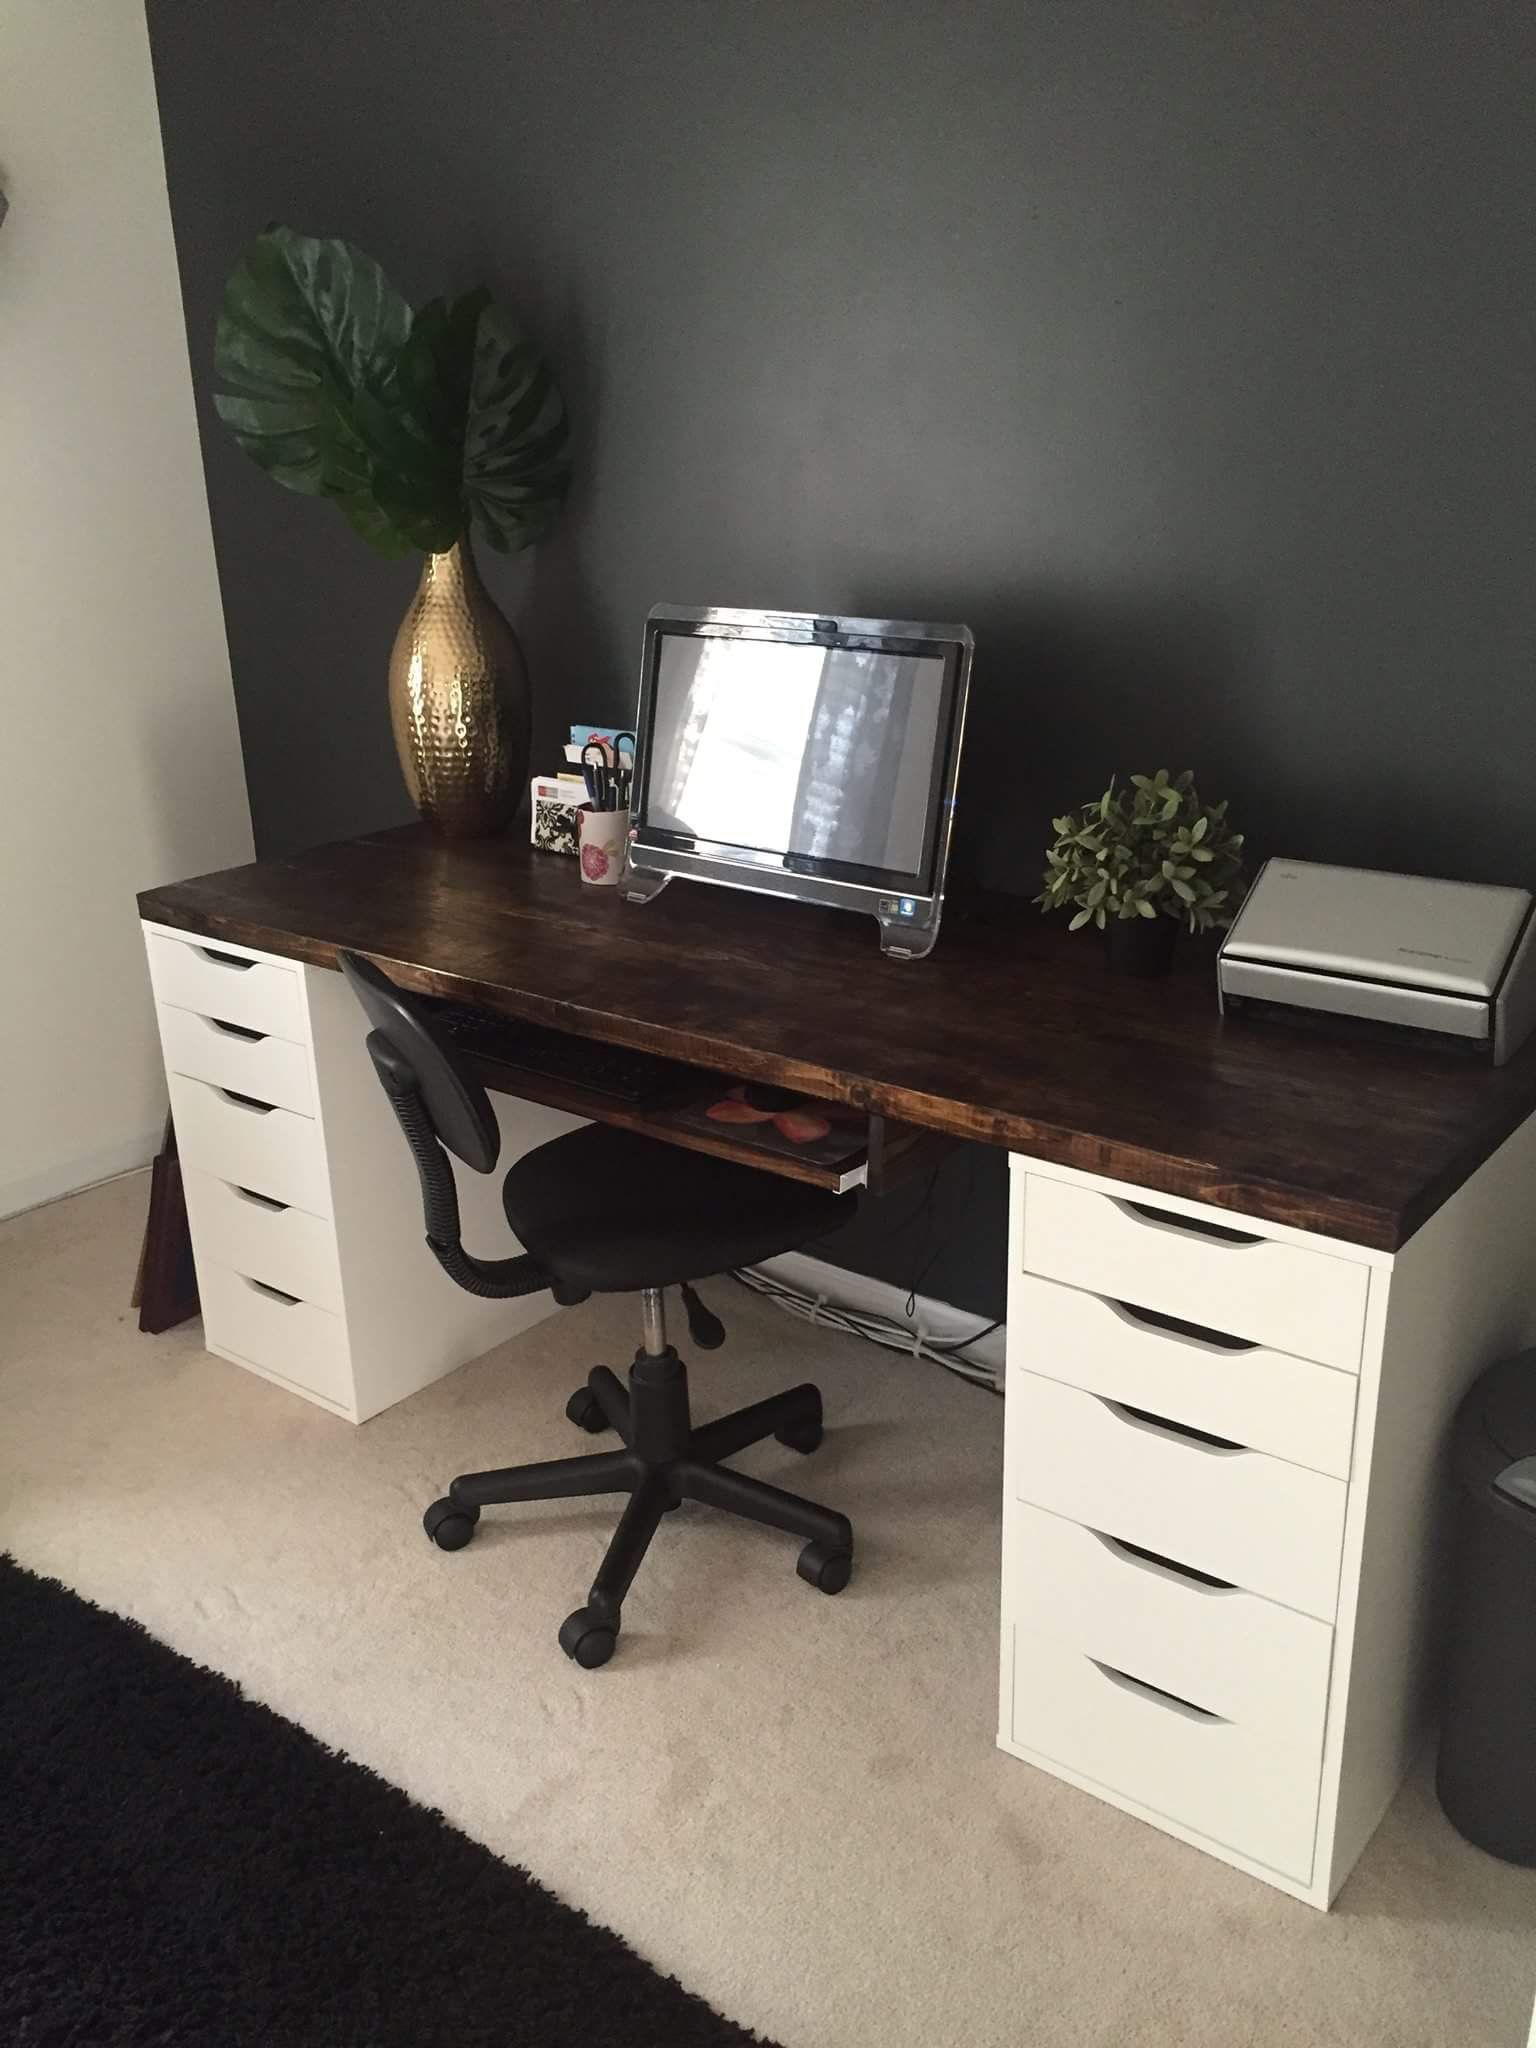 Office Desk With Ikea Alex Drawer Units As Base Except